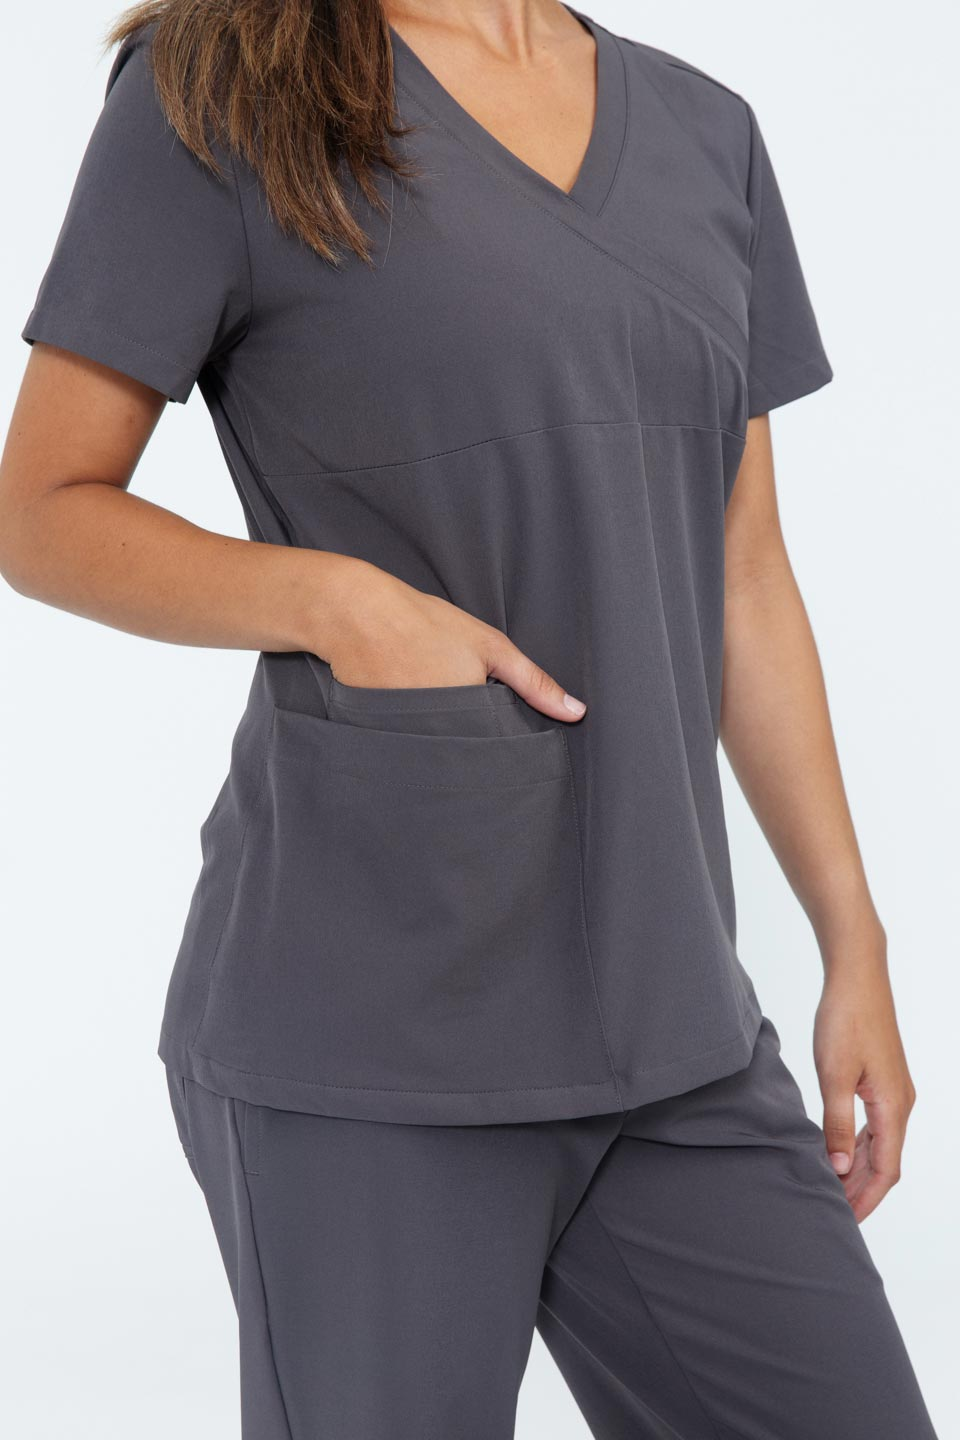 Kalea - Womens Jubilee Scrub Top - Gray